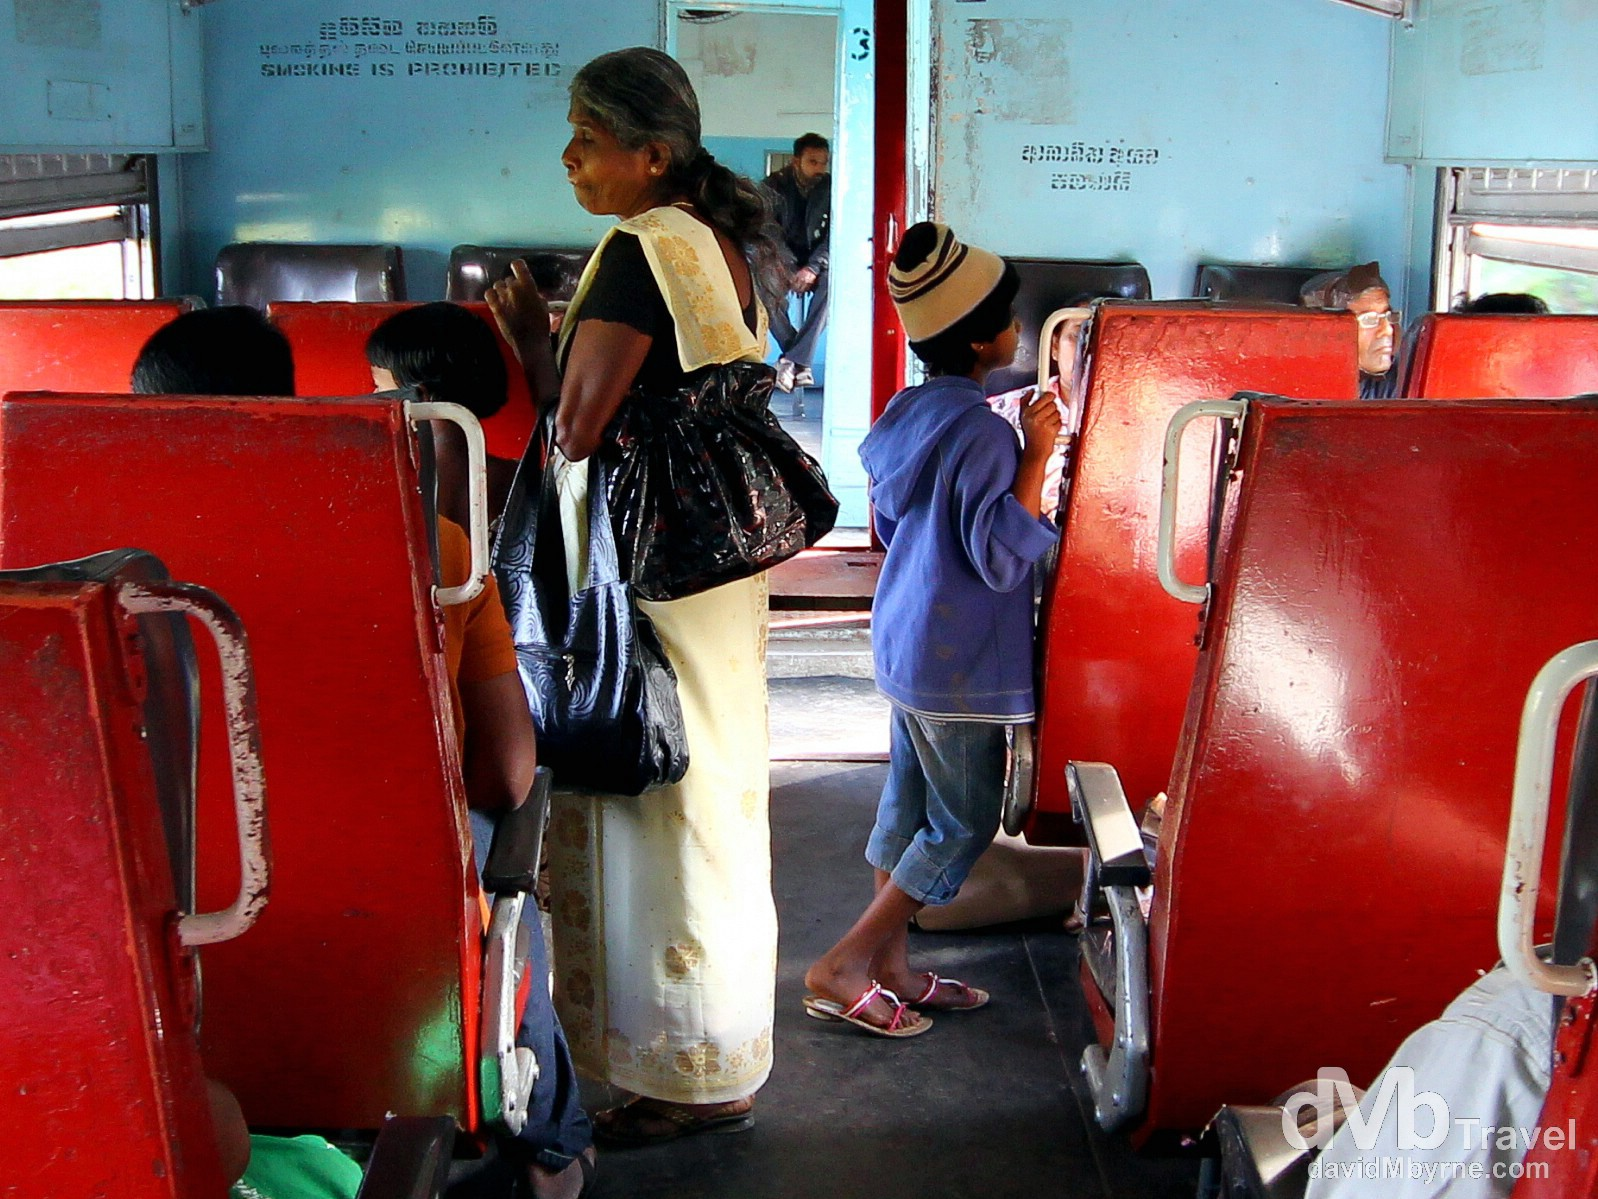 On the Colombo-bound train in central Sri Lanka. September 5th 2012.